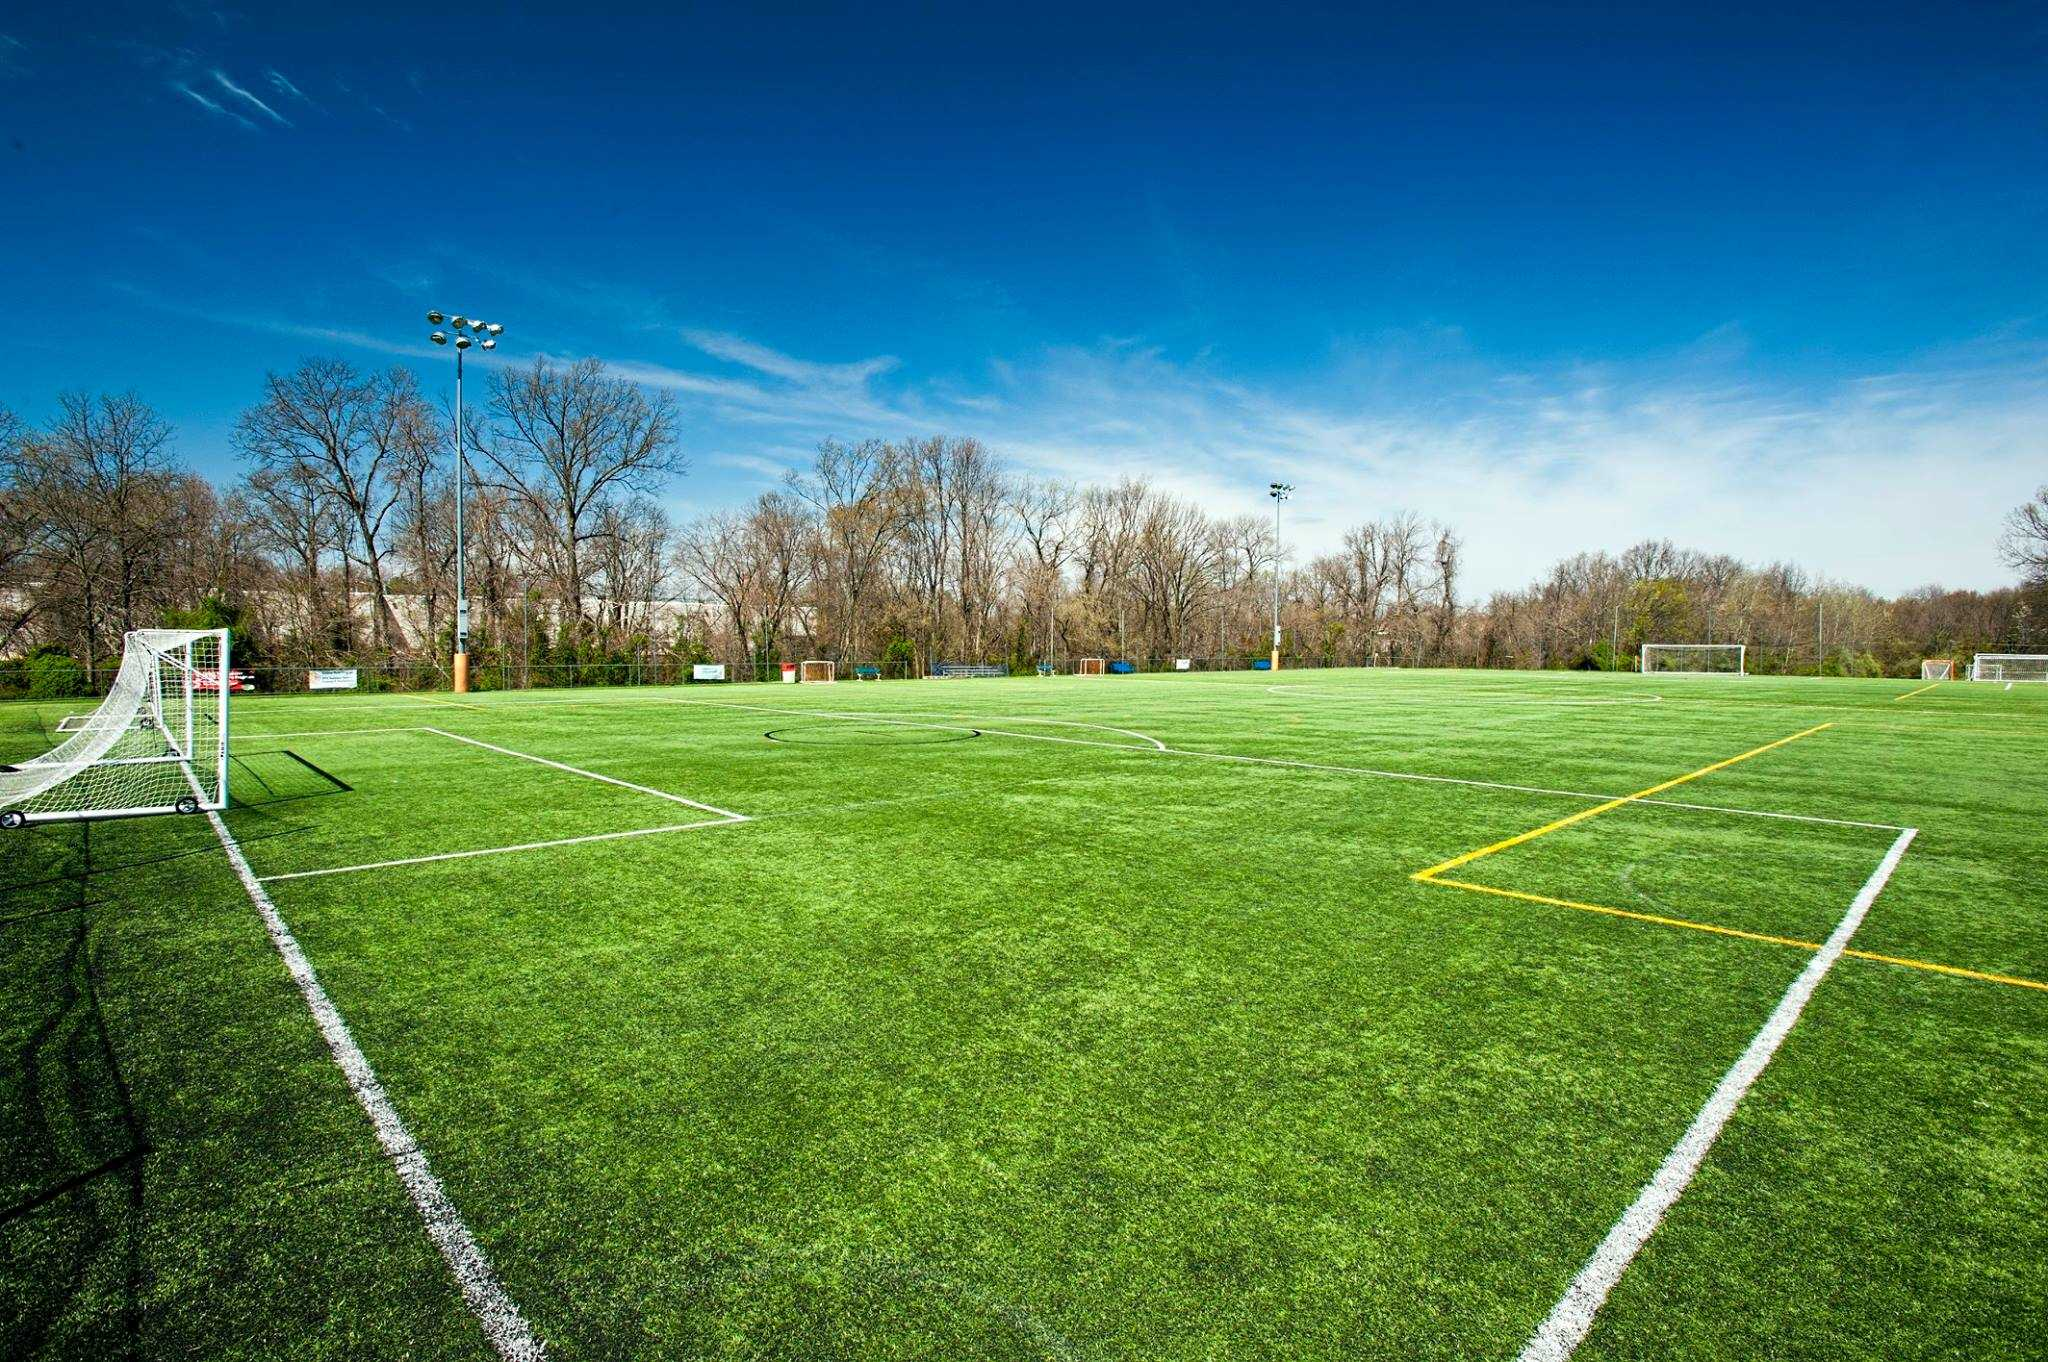 NJ Outdoor Soccer Turf Rentals